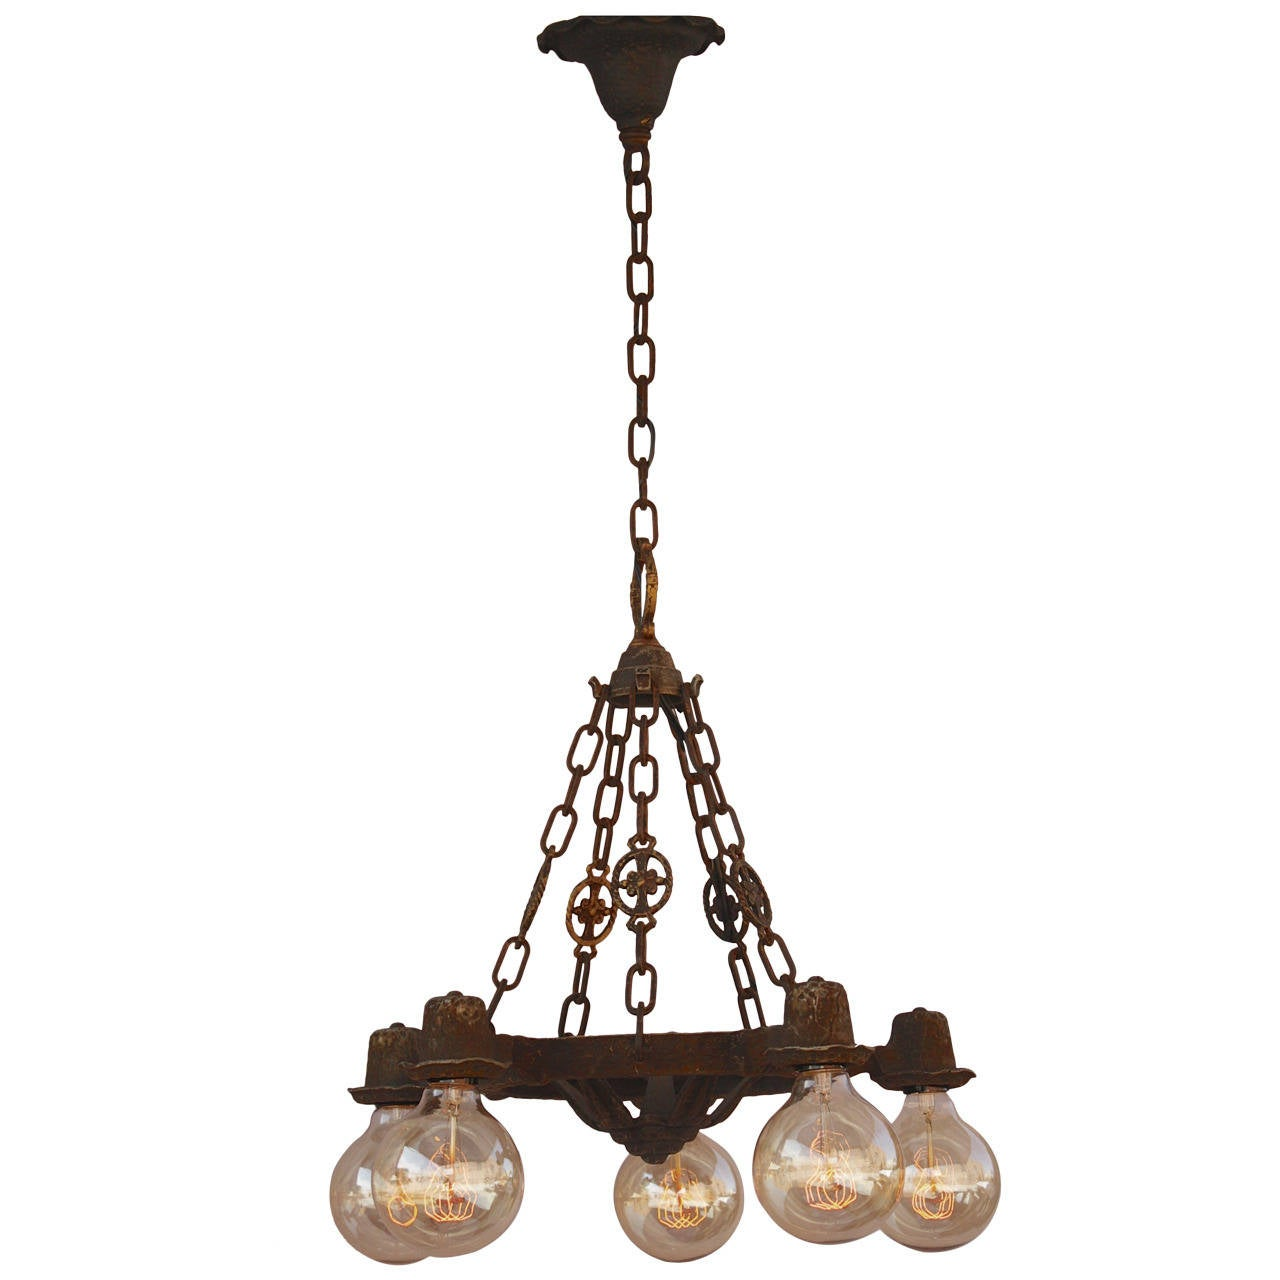 Items Similar To Lighting Rustic Chandelier Vintage 1920 S: 1920s Downlight Chandelier At 1stdibs